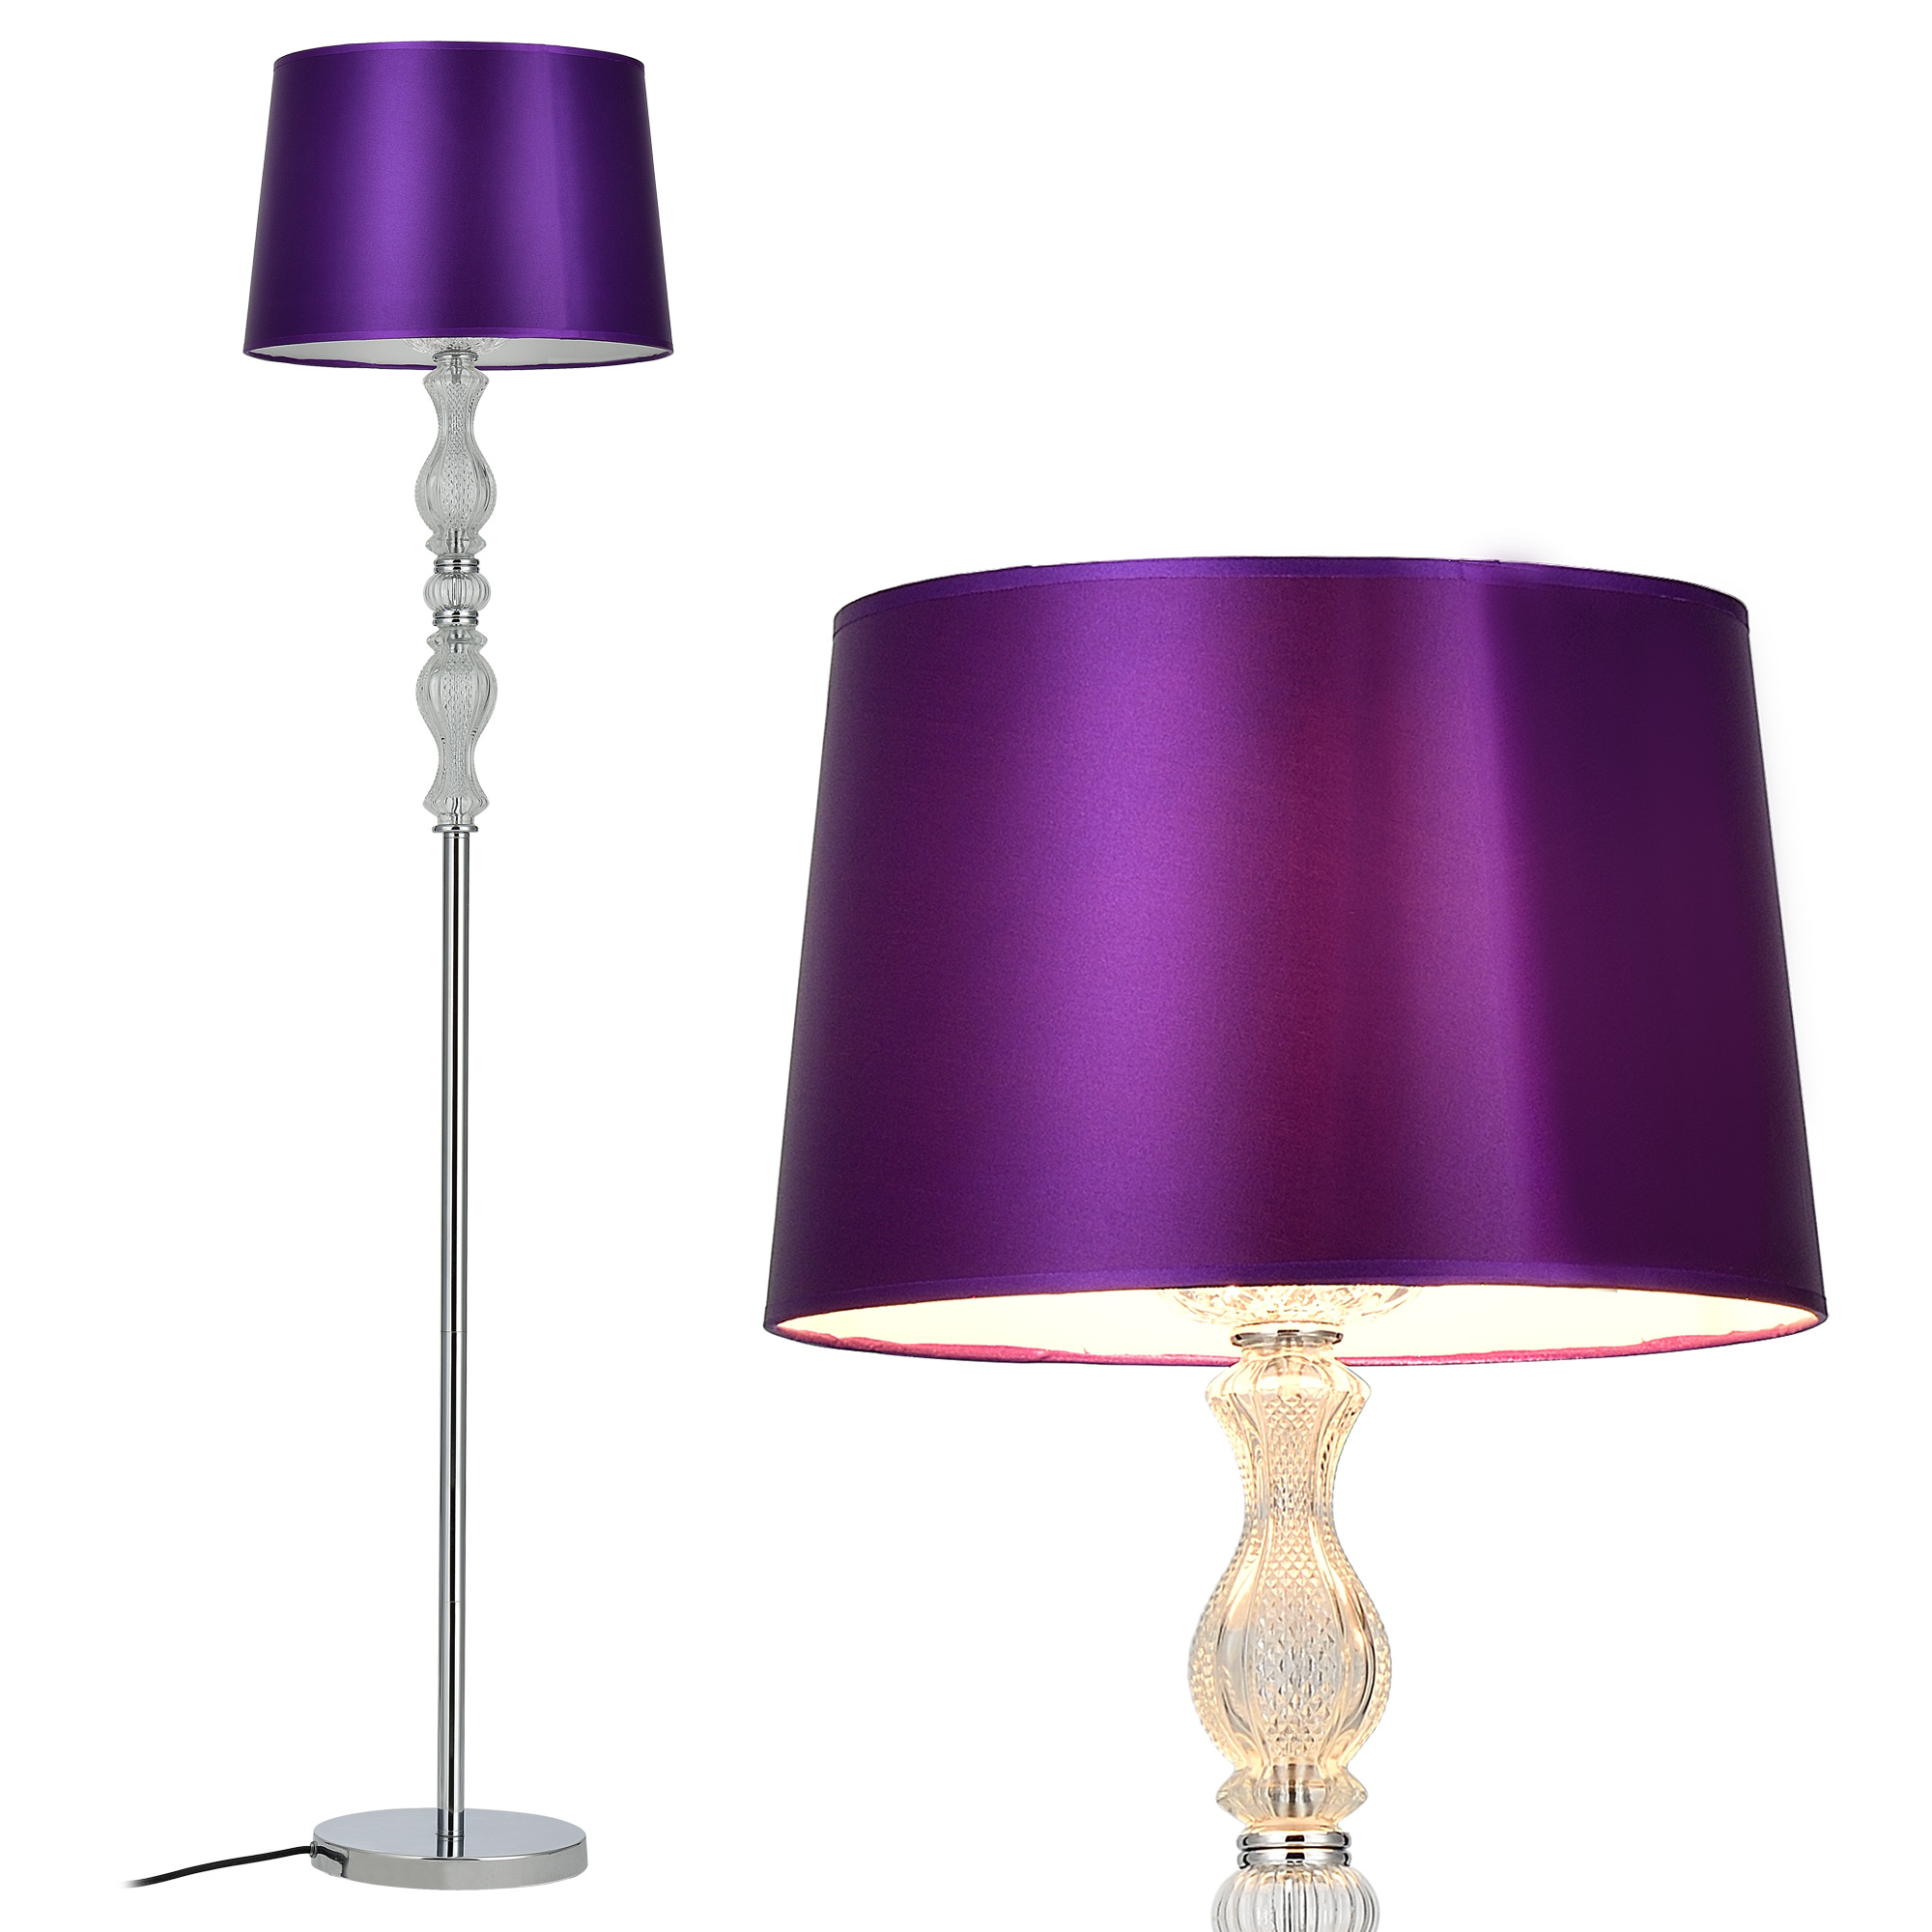 stehleuchte stehlampe design lampe leuchte standleuchte chrom boden ebay. Black Bedroom Furniture Sets. Home Design Ideas